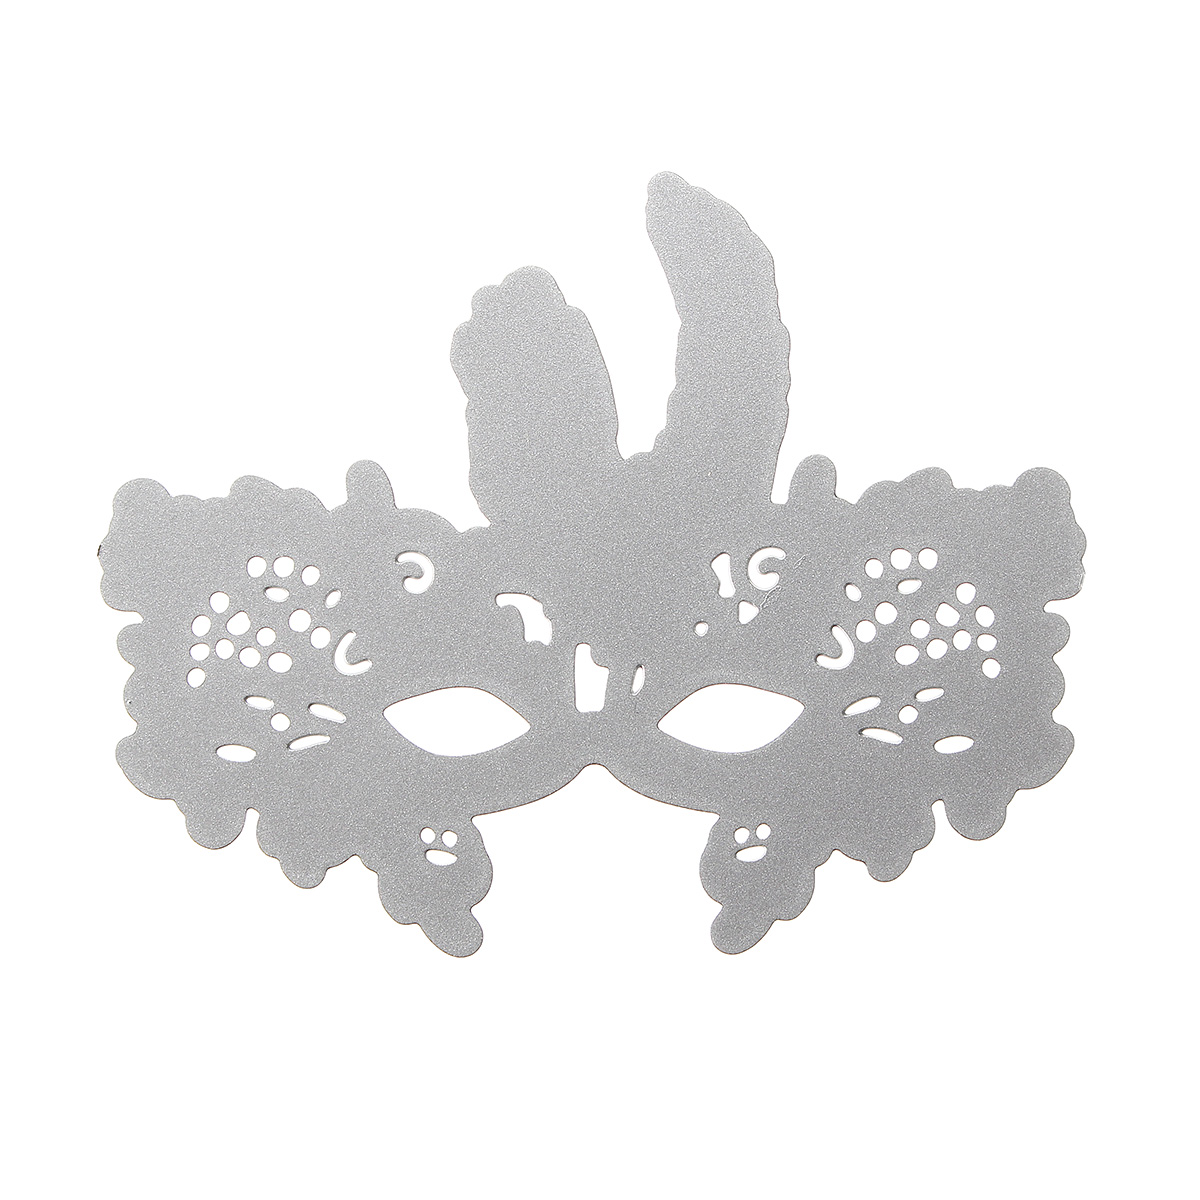 Carnival Mask Pattern Scrapbook DIY Album Card Paper Craft Maker Metal Dies Cutting Stencils 8.8x7cm